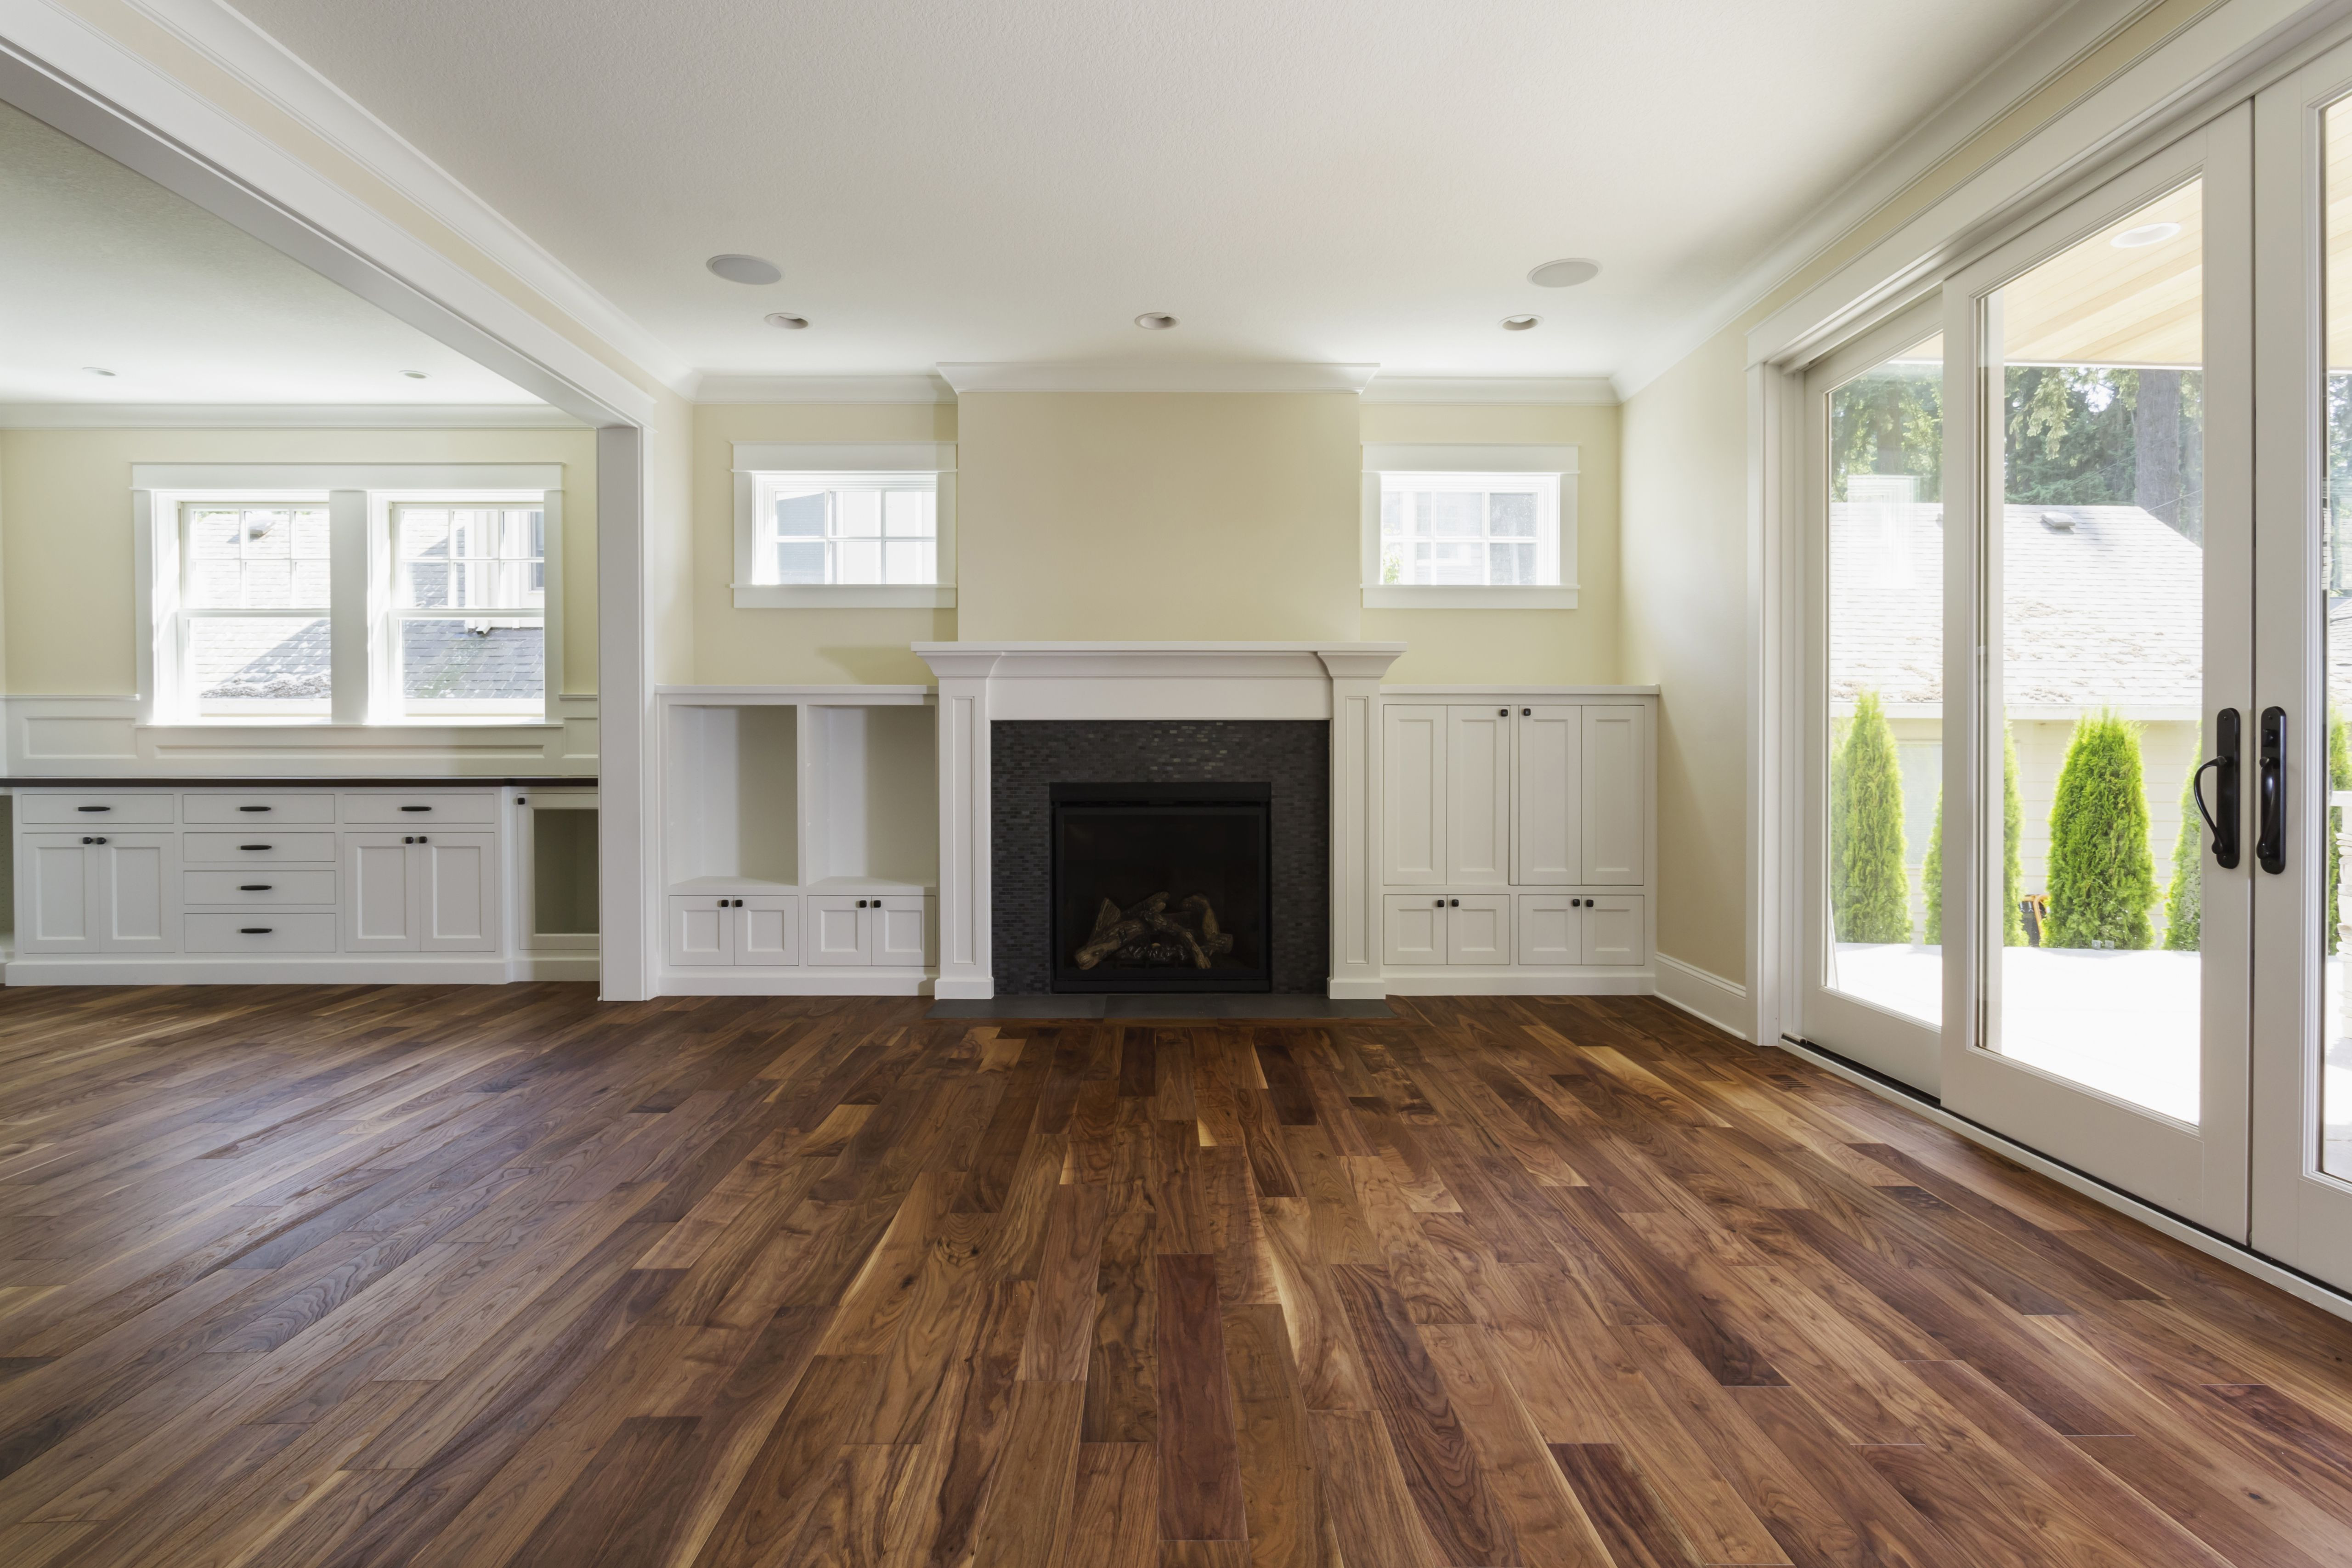 hardwood floor ideas styles of the pros and cons of prefinished hardwood flooring inside fireplace and built in shelves in living room 482143011 57bef8e33df78cc16e035397